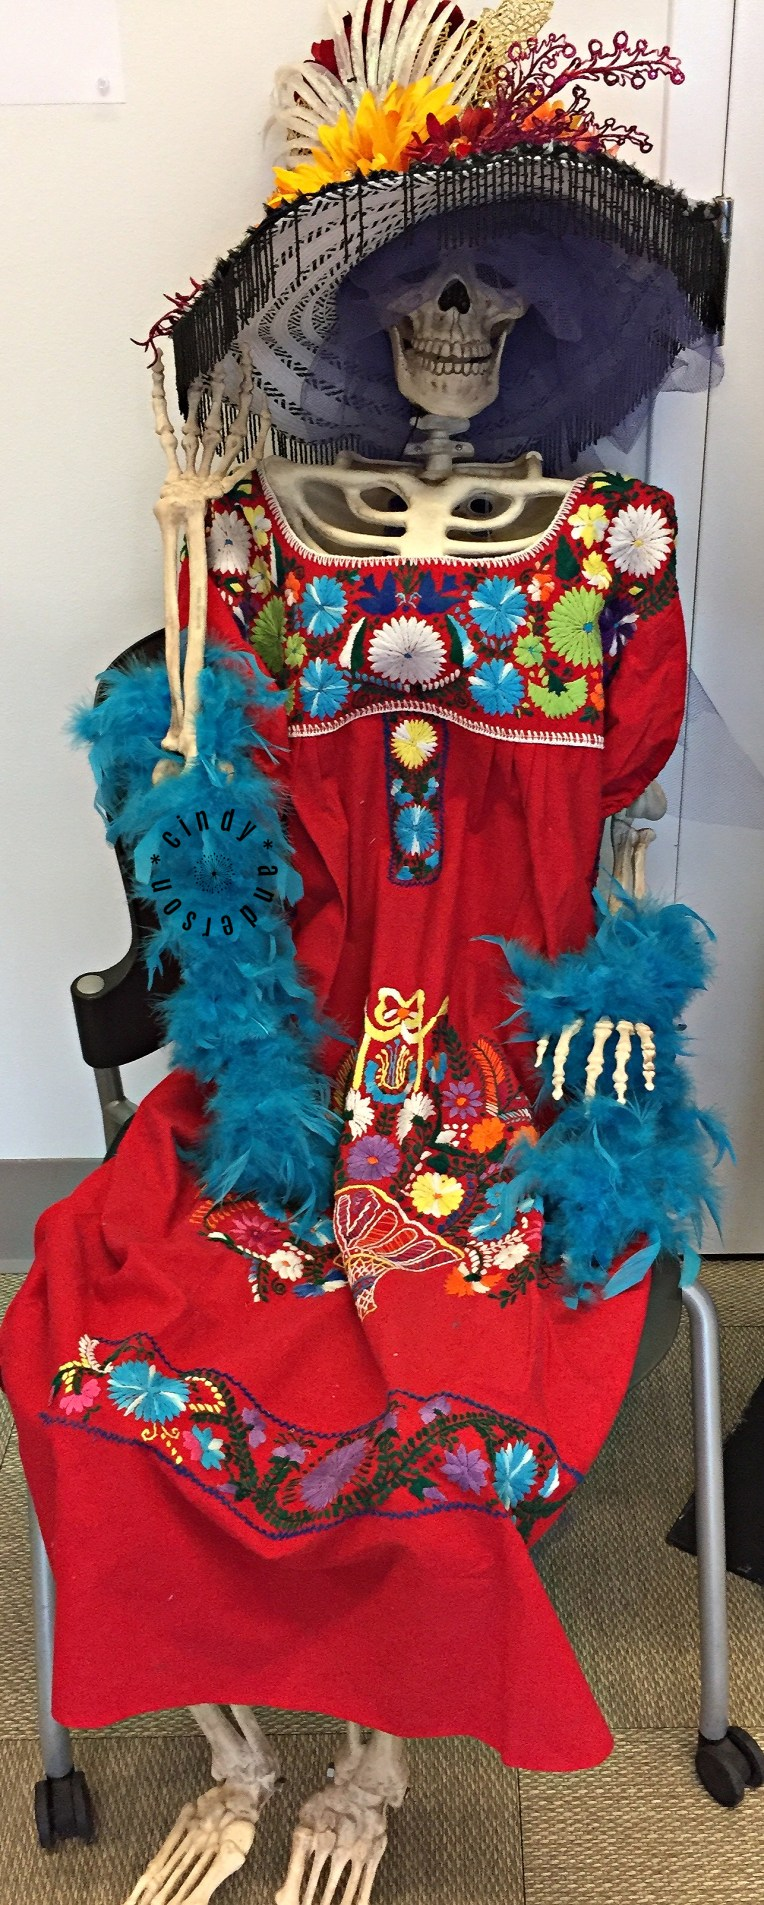 A skeleton dressed with a wildly decorated hat, teal feathered scarf and a red dress with multi-colored embellishments.